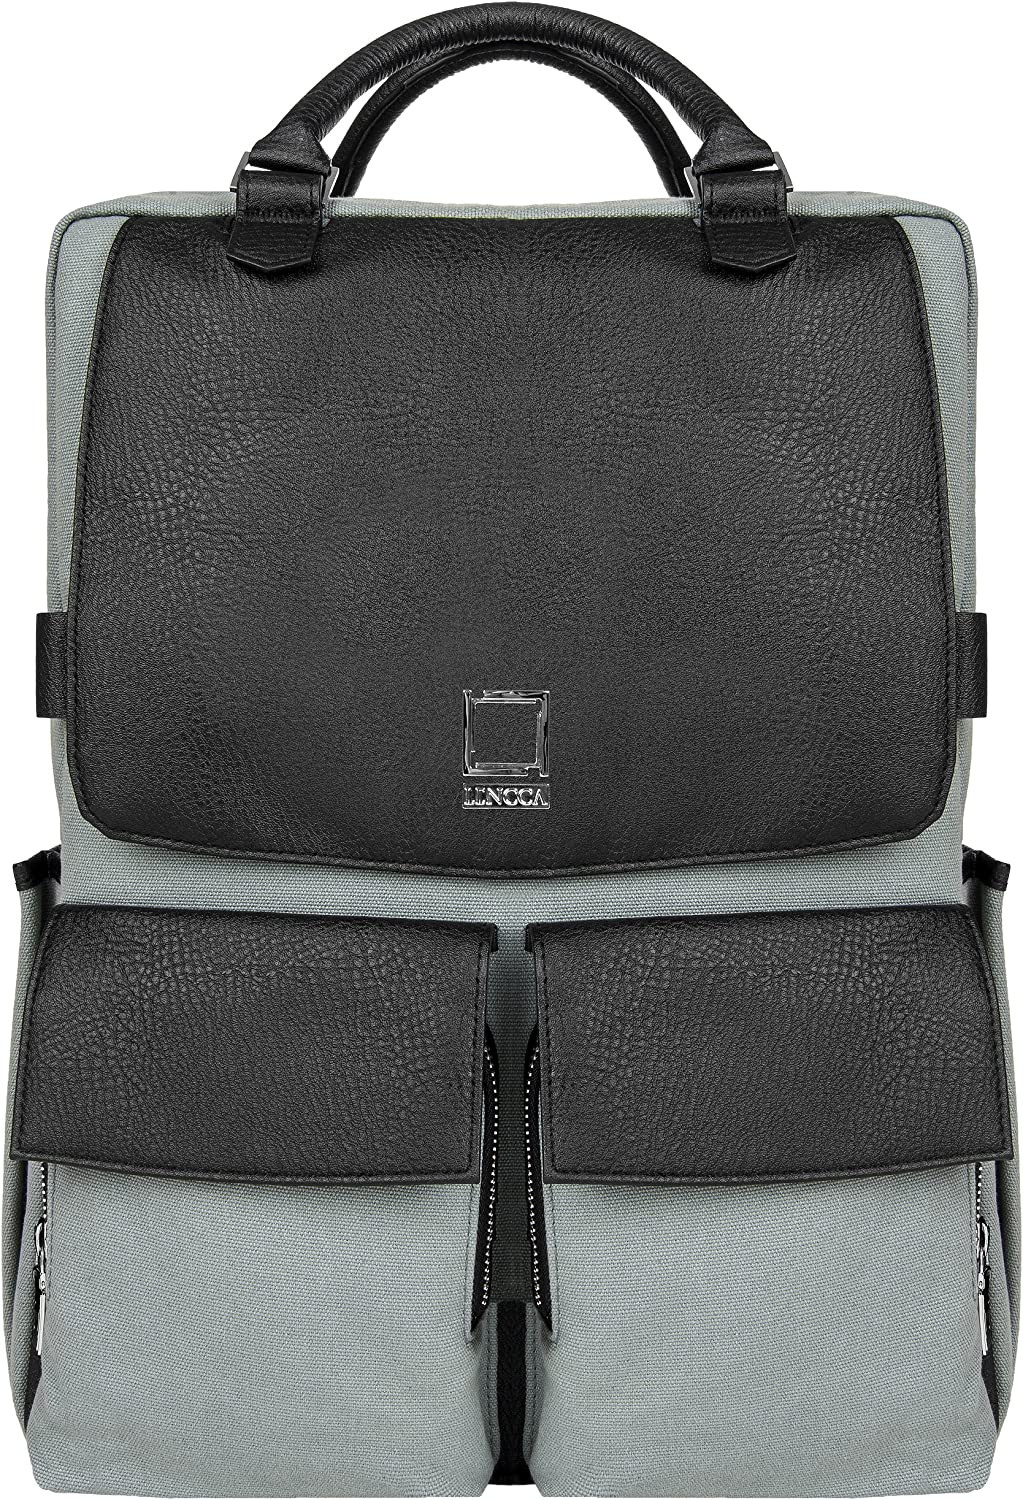 Lencca Novo Canvas and Vegan Leather Backpack Crossover for up to 15.6 Laptops LenNovoGRY